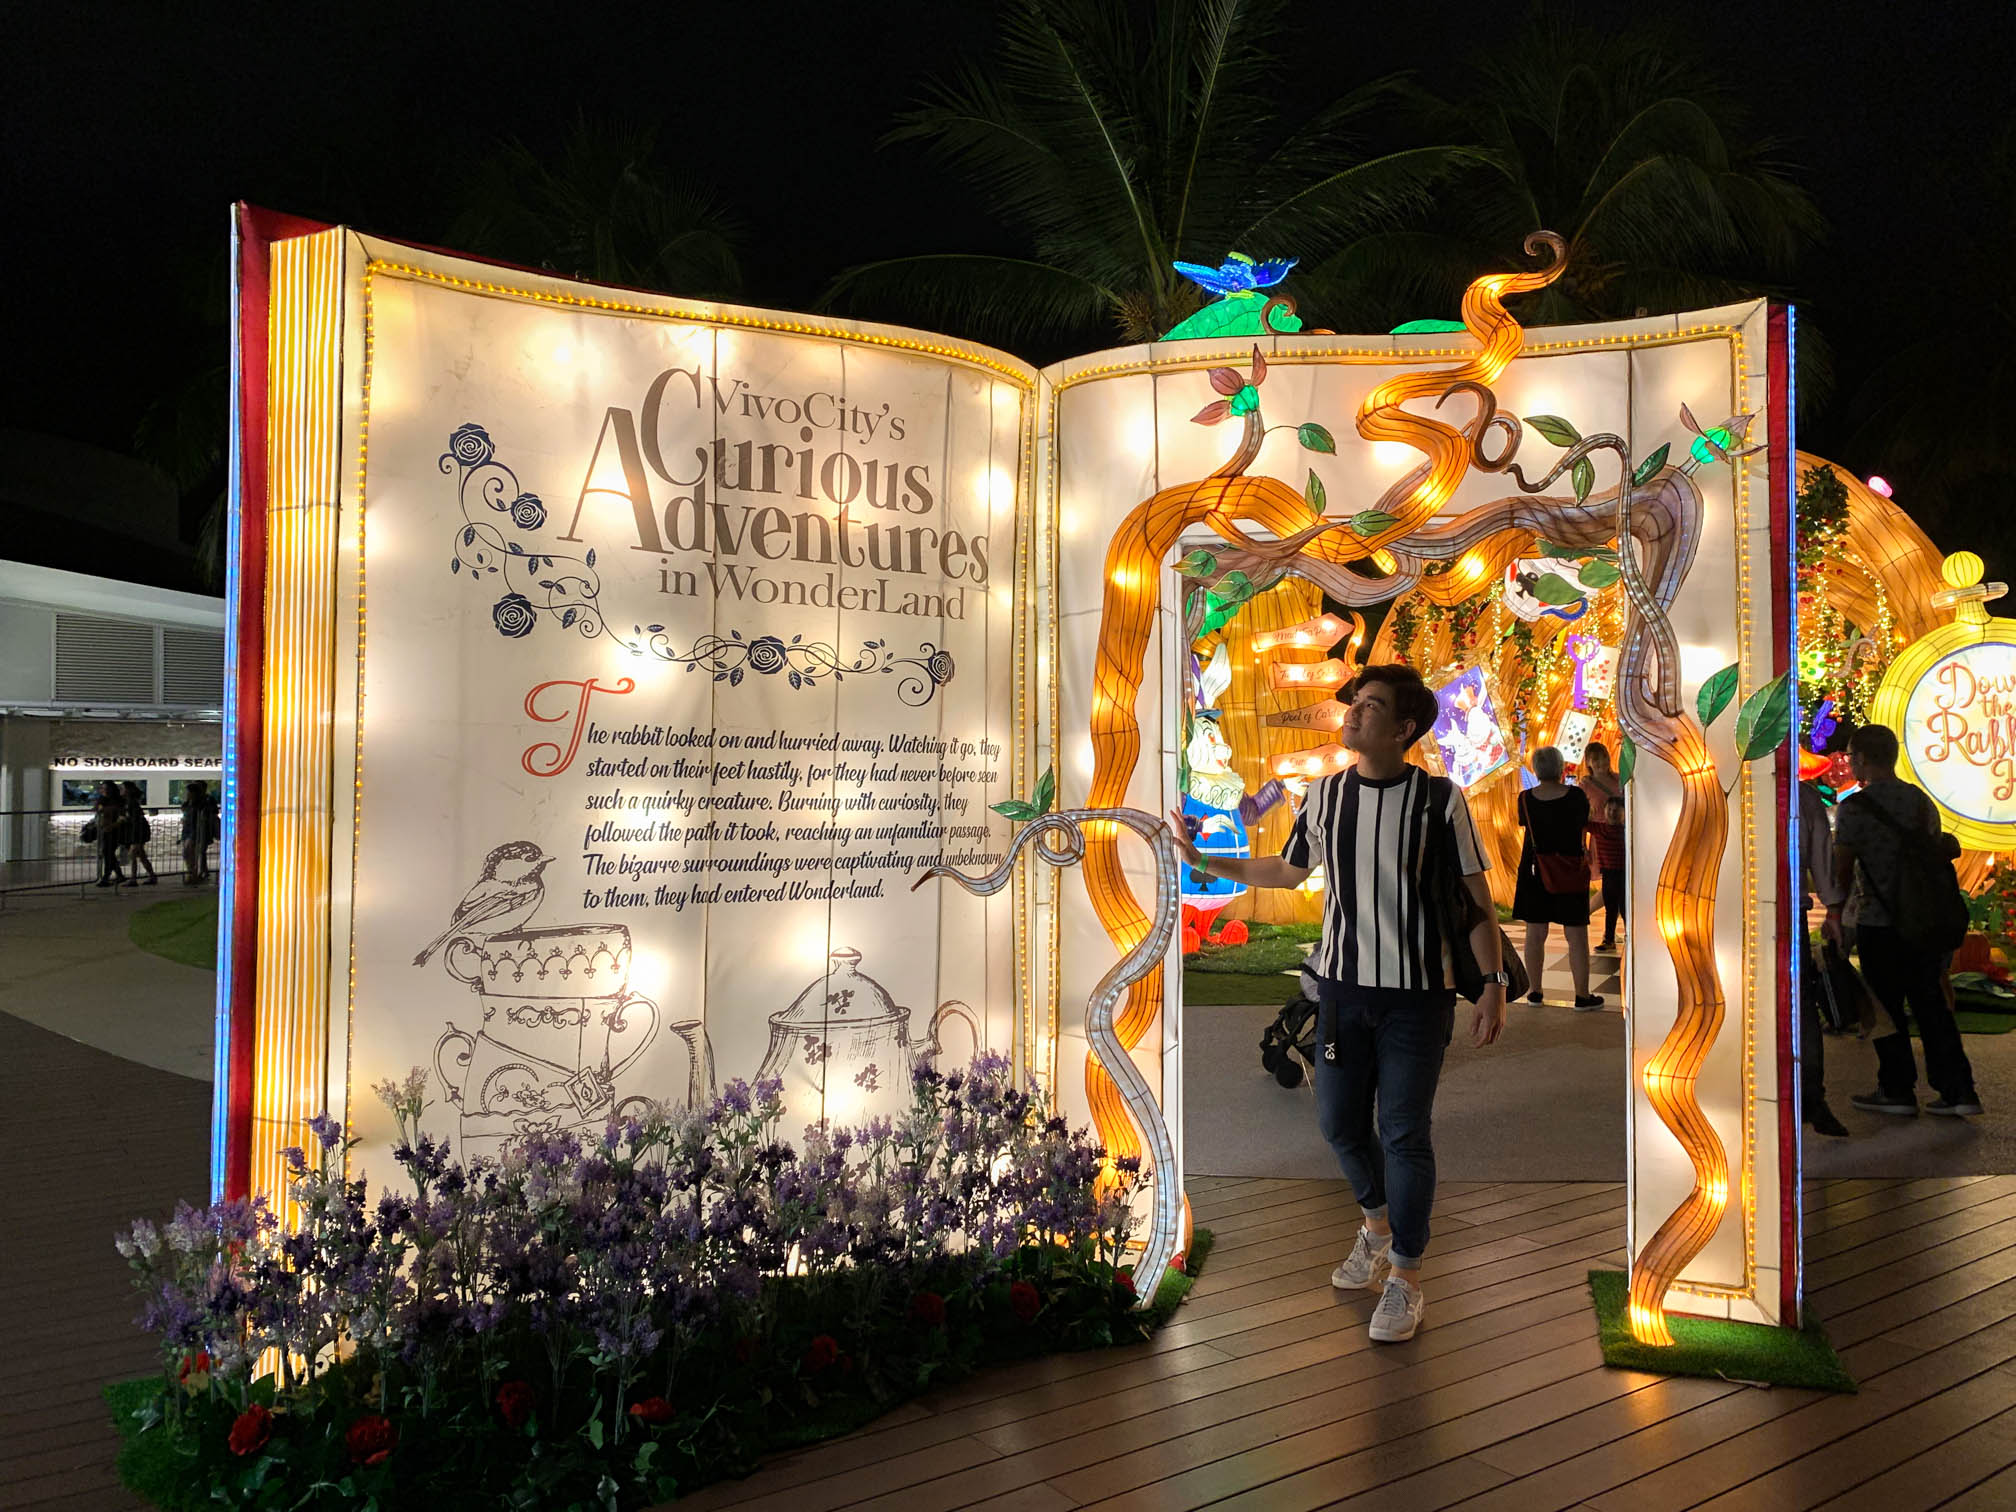 VIVOCITY-Mid-Autumn-Festival-Curious-Adventure-In-Wonderland-2019-darrenbloggie-3569